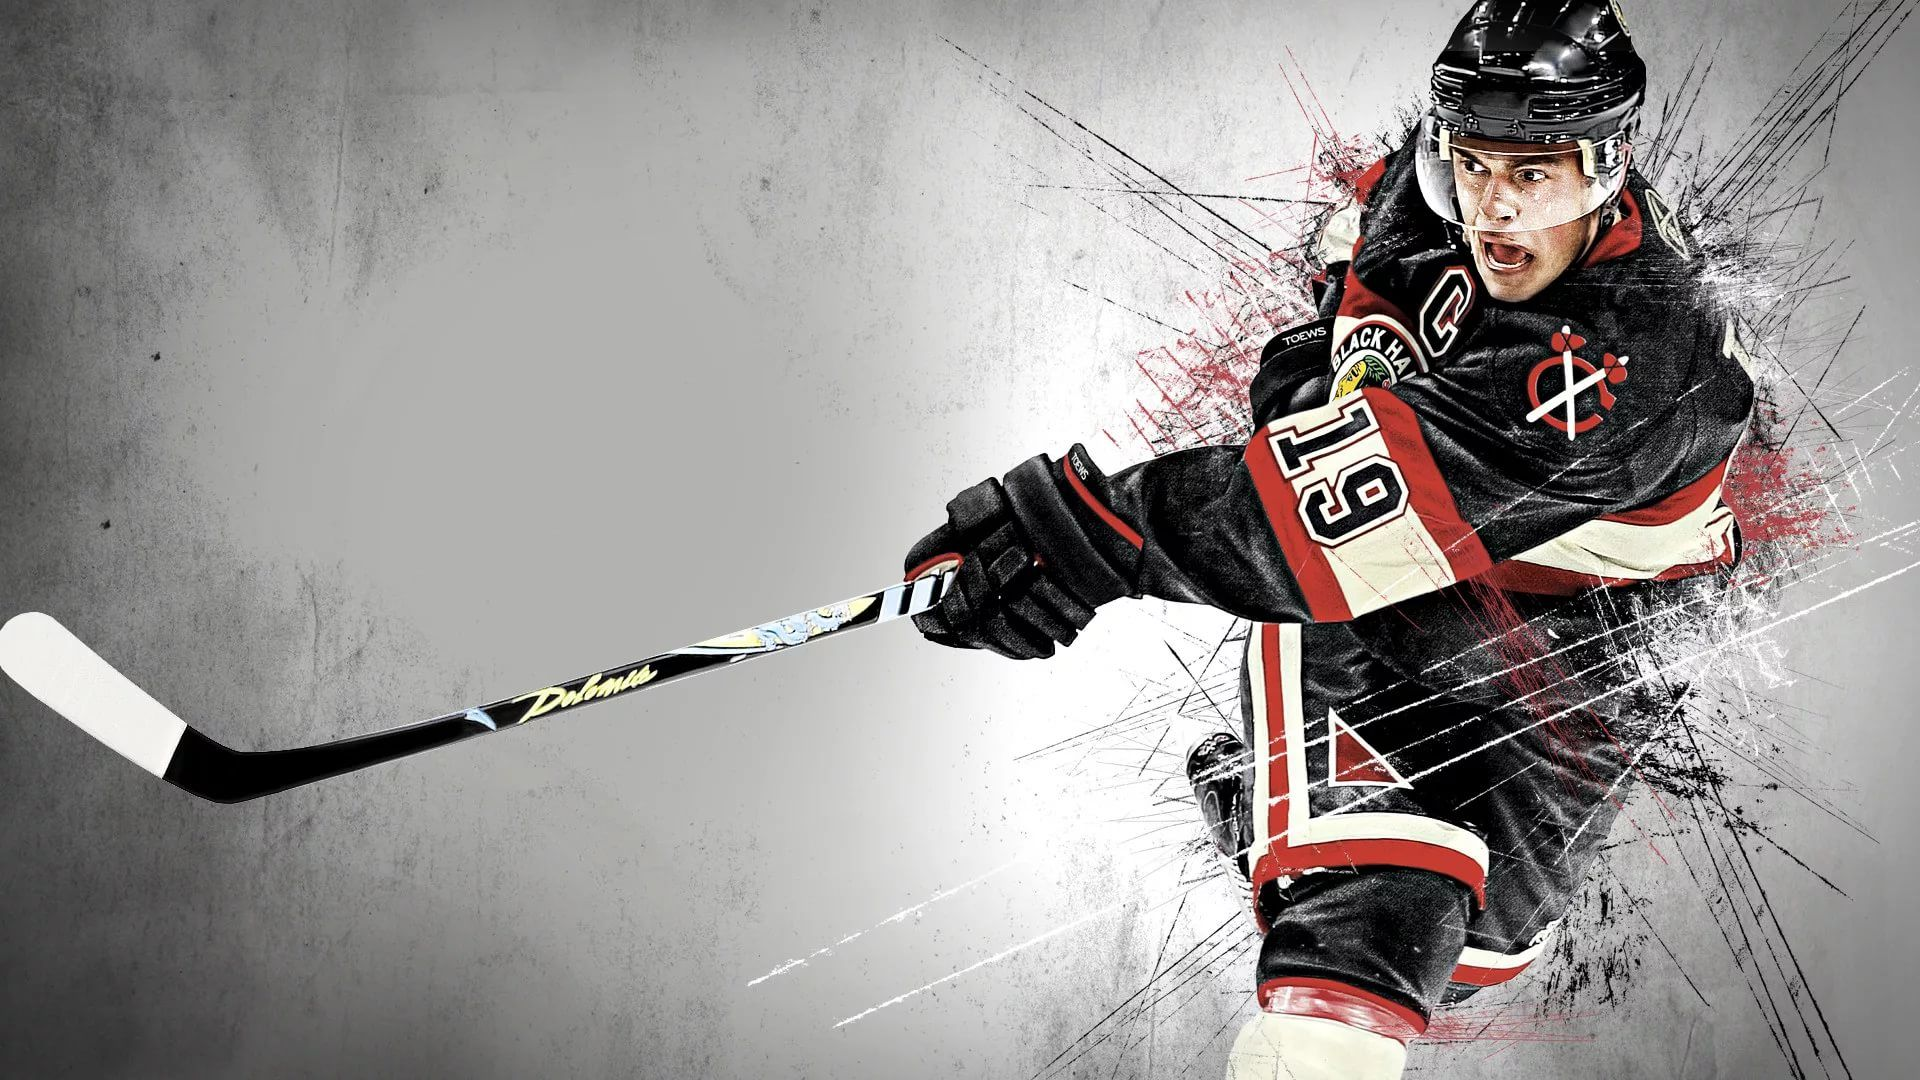 Ice Hockey download free wallpapers for pc in hd